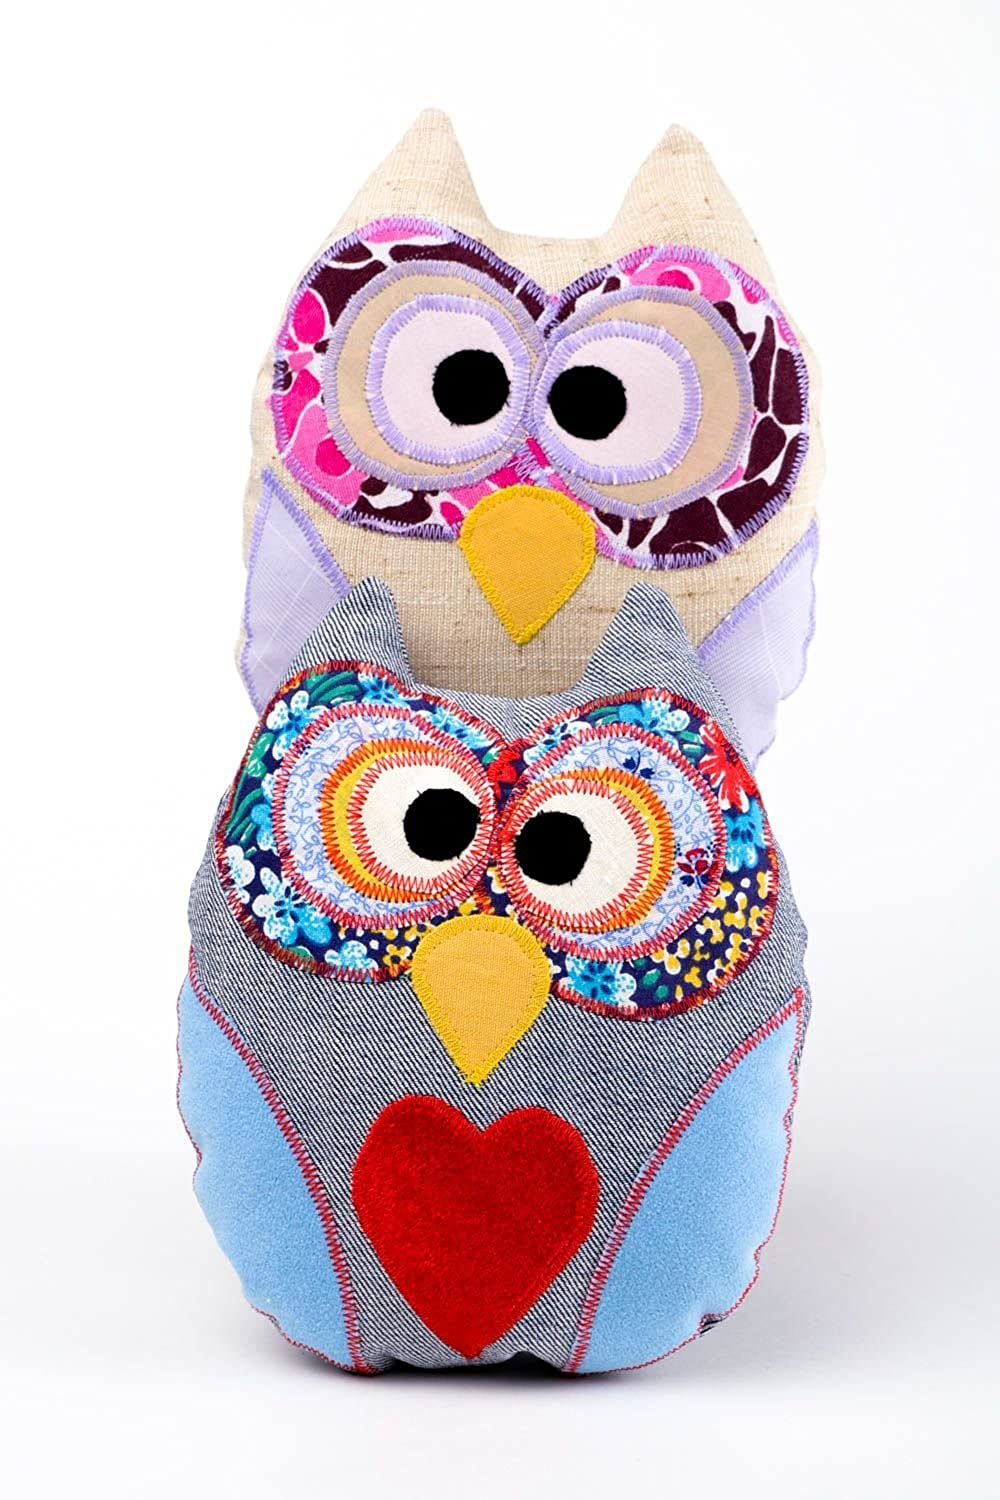 Handmade Designer Owl Toys 2 Cute Soft Toys For Kids Stylish Textile Toys